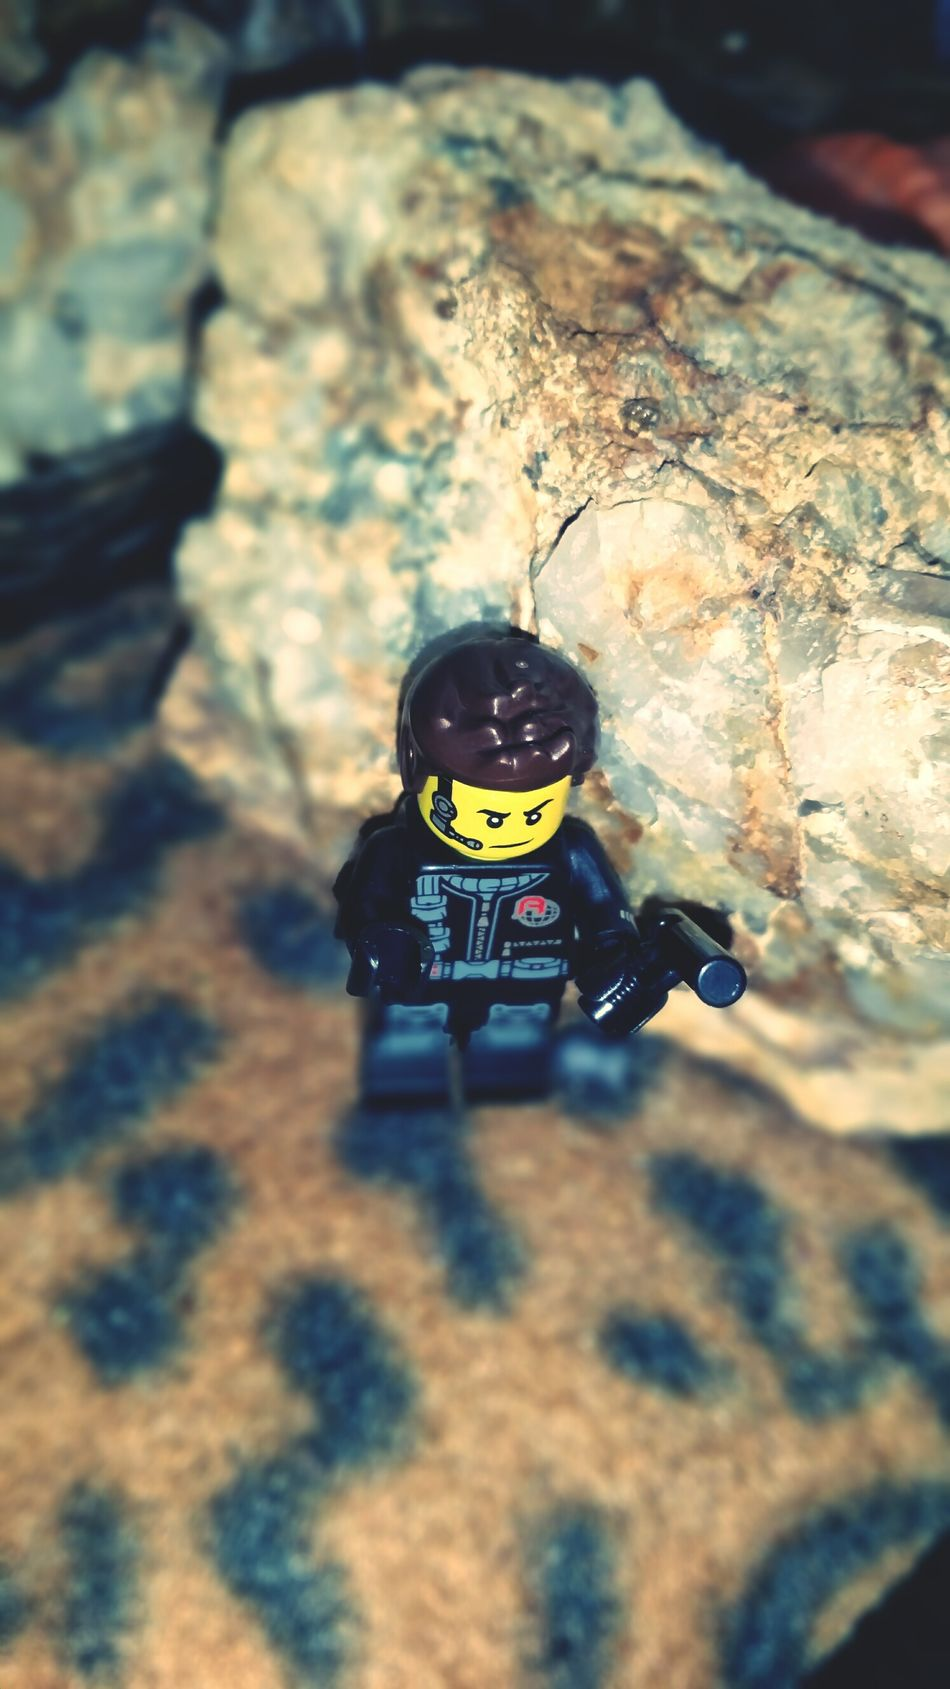 Close-up Through My Lens High Angle View Australianphotographer Mobilephone Photography Lego Man No People Fragility Quartz Rocks Lego Minifigures LEGO Backgrounds Indoors  Full Frame Abstract Quartz